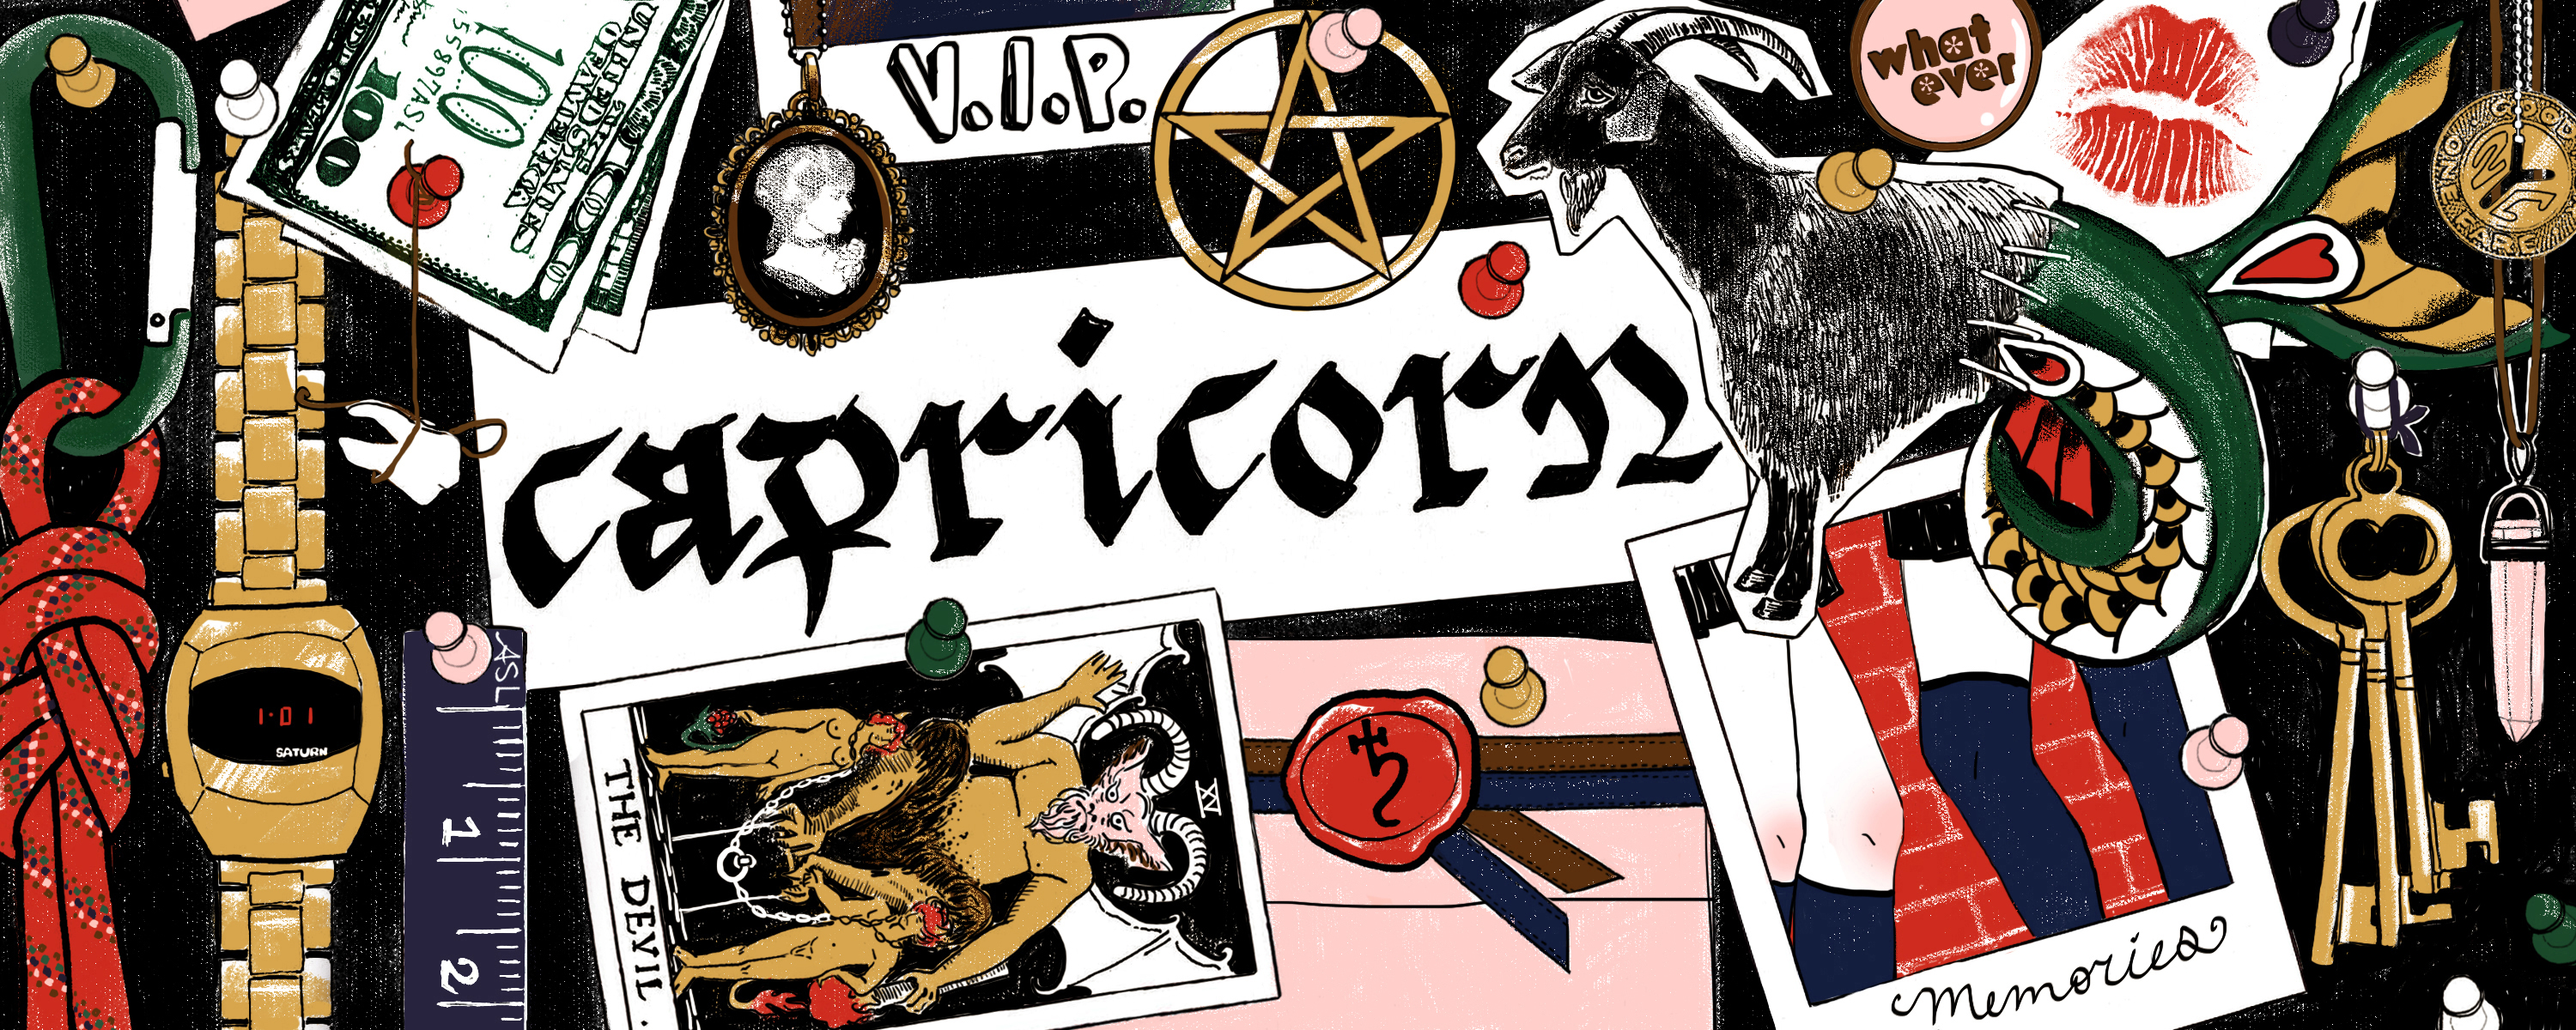 Weekly Horoscope: August 5 - 11 - VICE